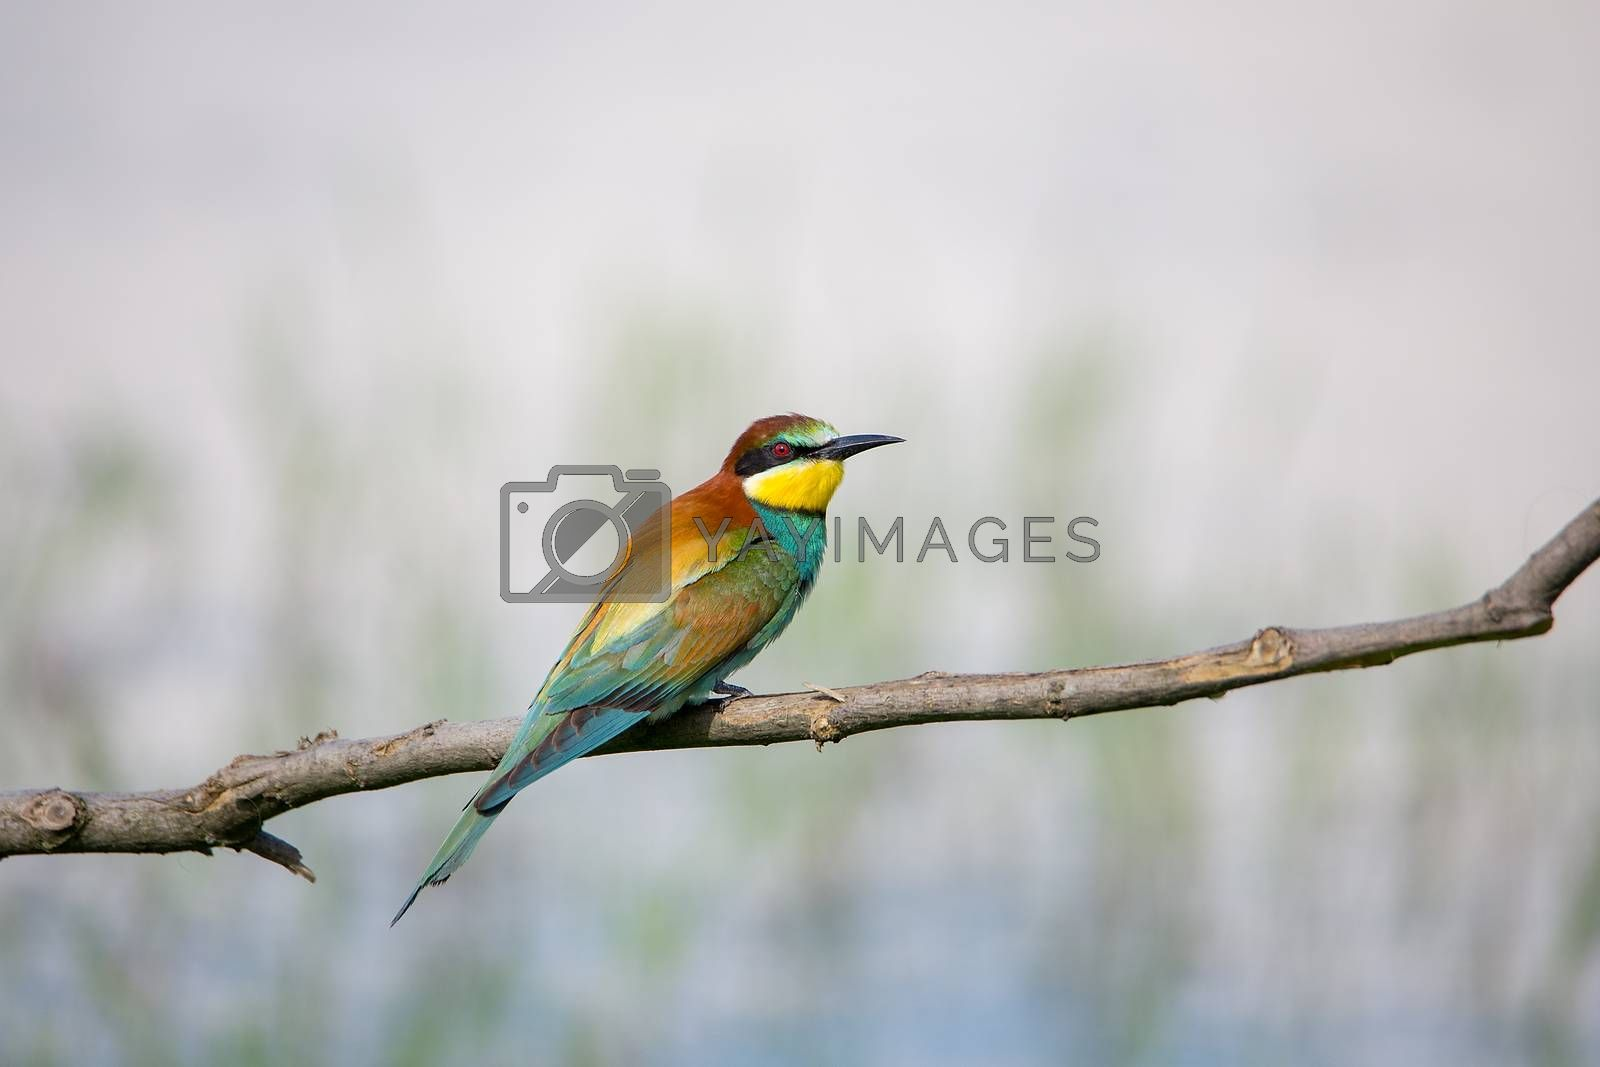 European Bee-eater (Merops apiaster) on brunch - Bird Male with Female, Isola della Cona, Monfalcone, Italy, Europe